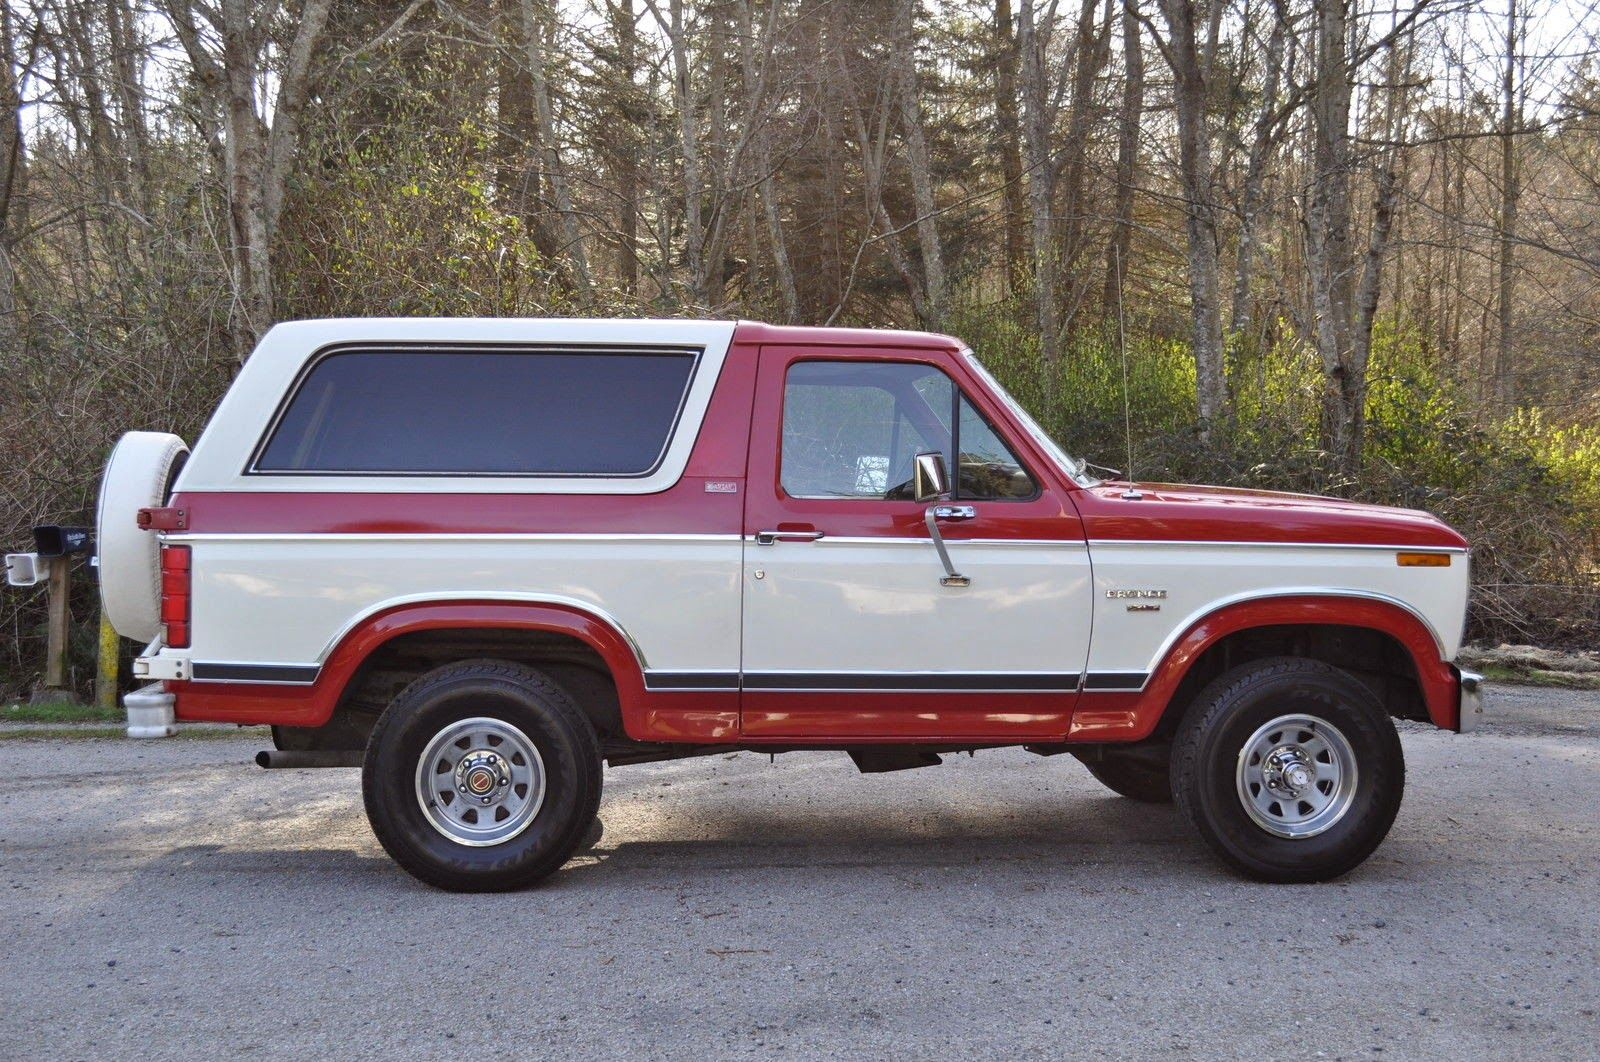 all american classic cars 1982 ford bronco xlt lariat 4x4 2 door all american classic cars 1982 ford bronco xlt lariat 4x4 2 door suv